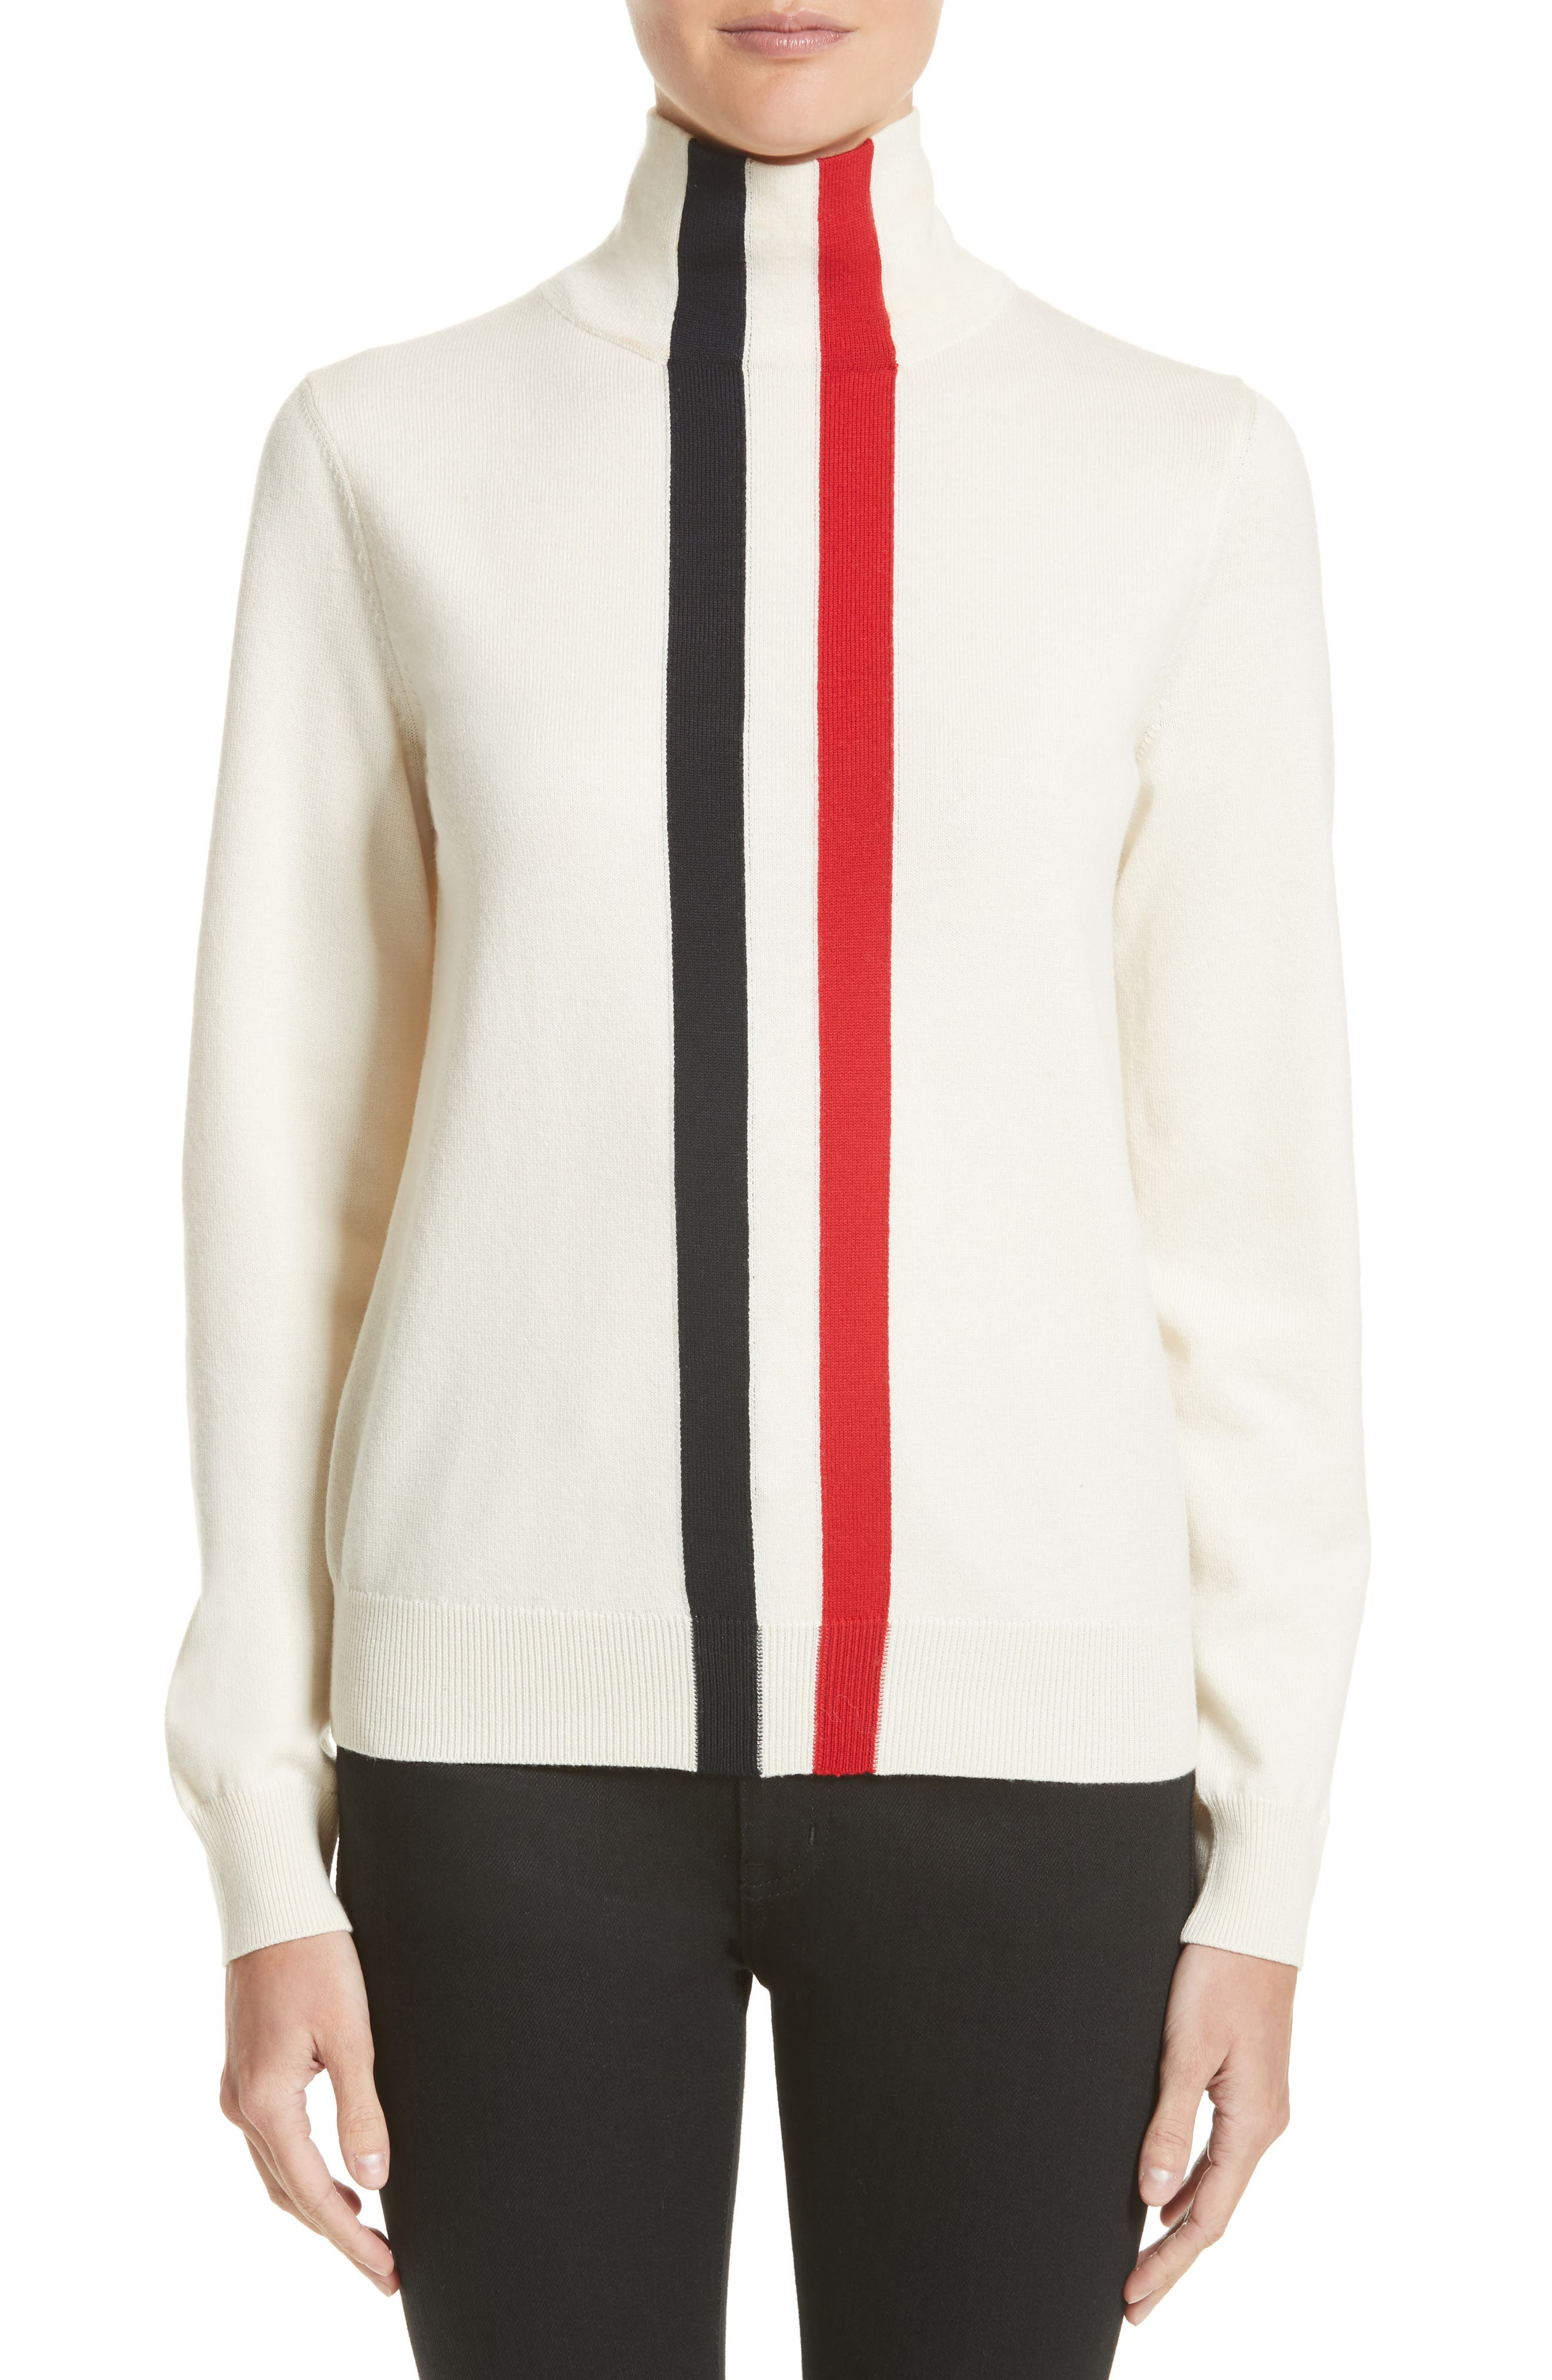 Moncler Ciclista Tricot Knit Sweater, Ivory